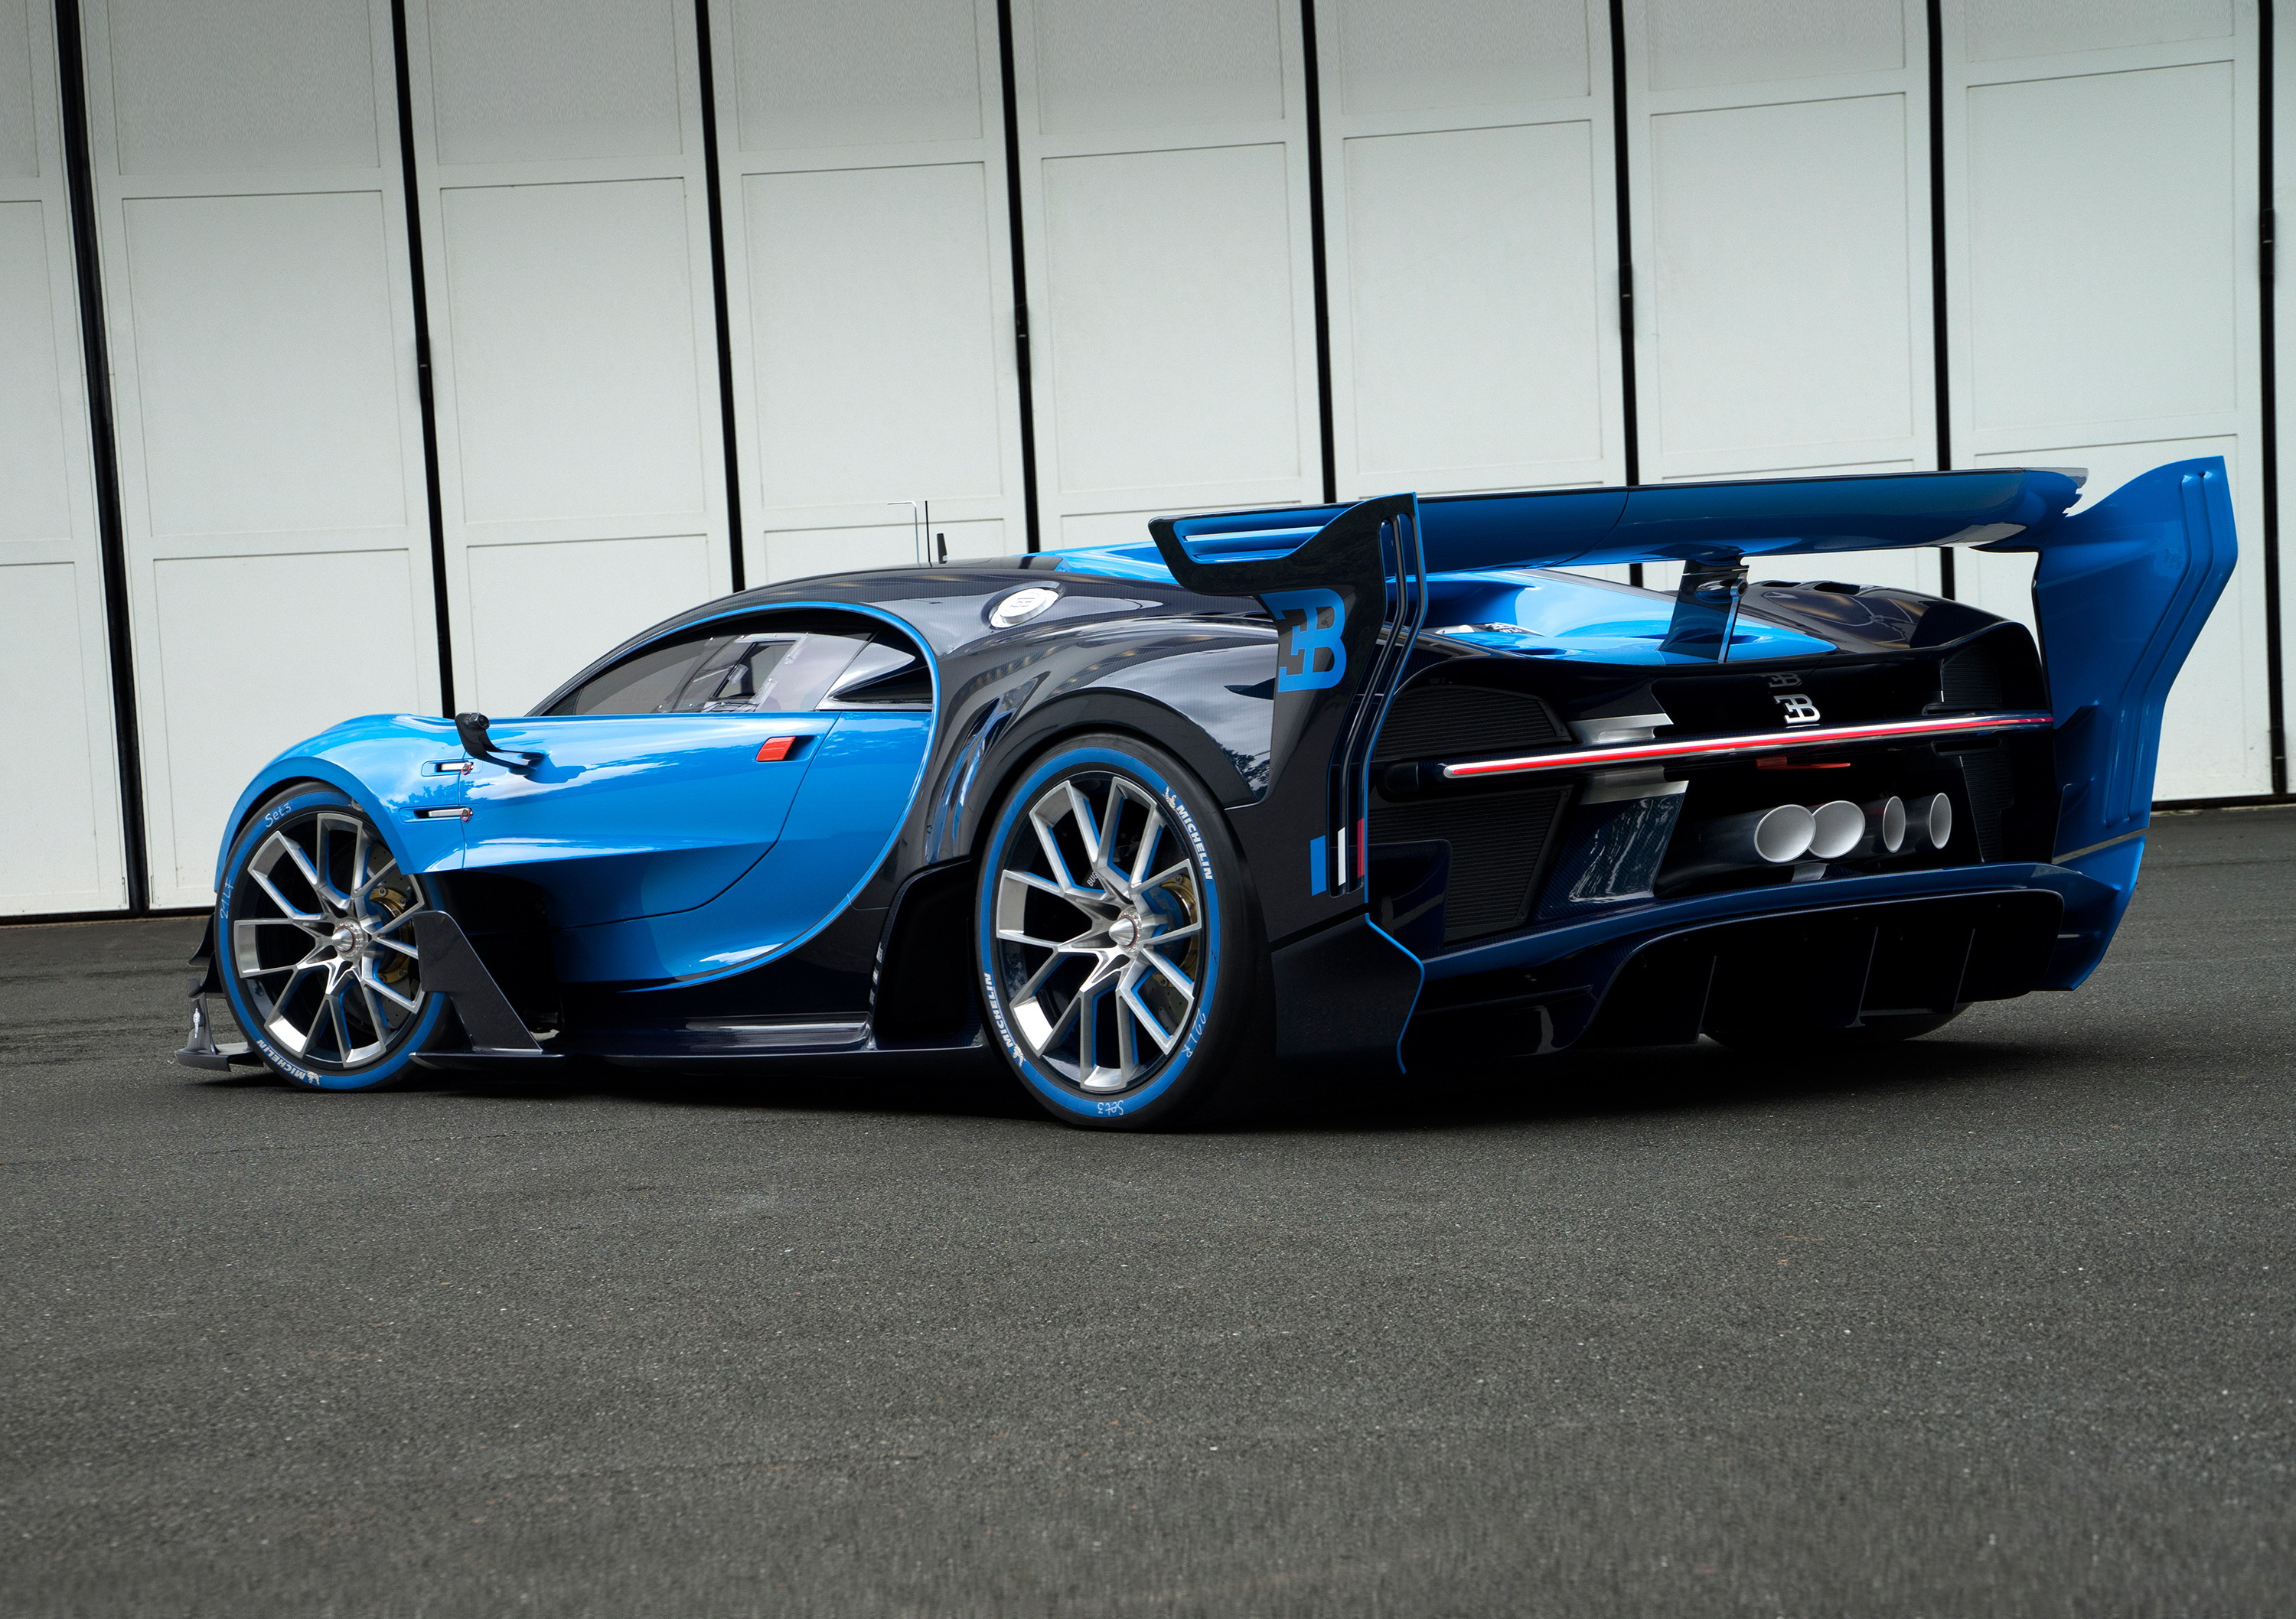 2016 Bugatti Vision Gran Turismo Top Speed Go Back Gt Gallery For Automotive Electrical Circuit Symbols